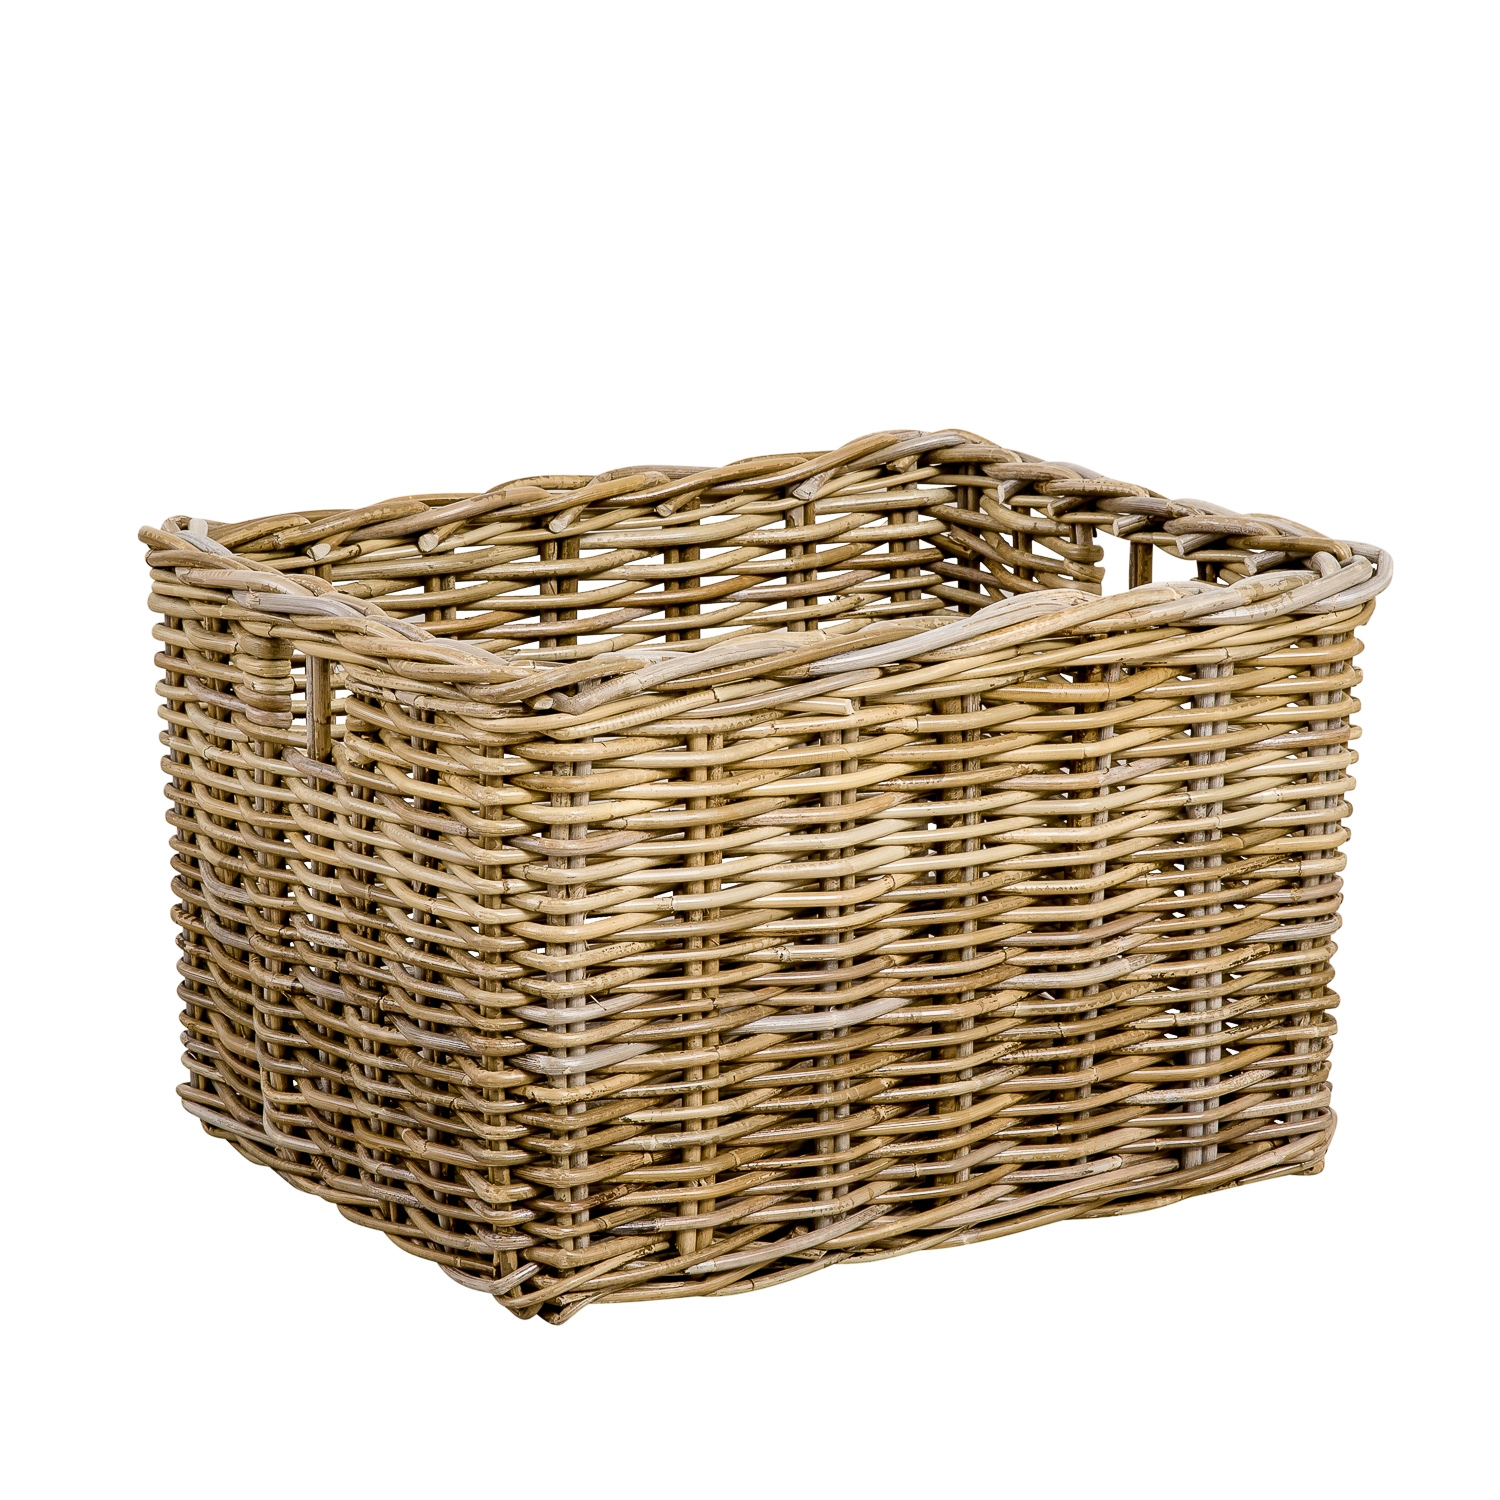 Hot Trends Vegetable Tray Fruit Display Storage Plastic Rectangle Rattan Wicker Basket Cheap Wholesale Buy Rattan Wicker Basket Rattan Basket Rattan Storage Basket Product On Alibaba Com